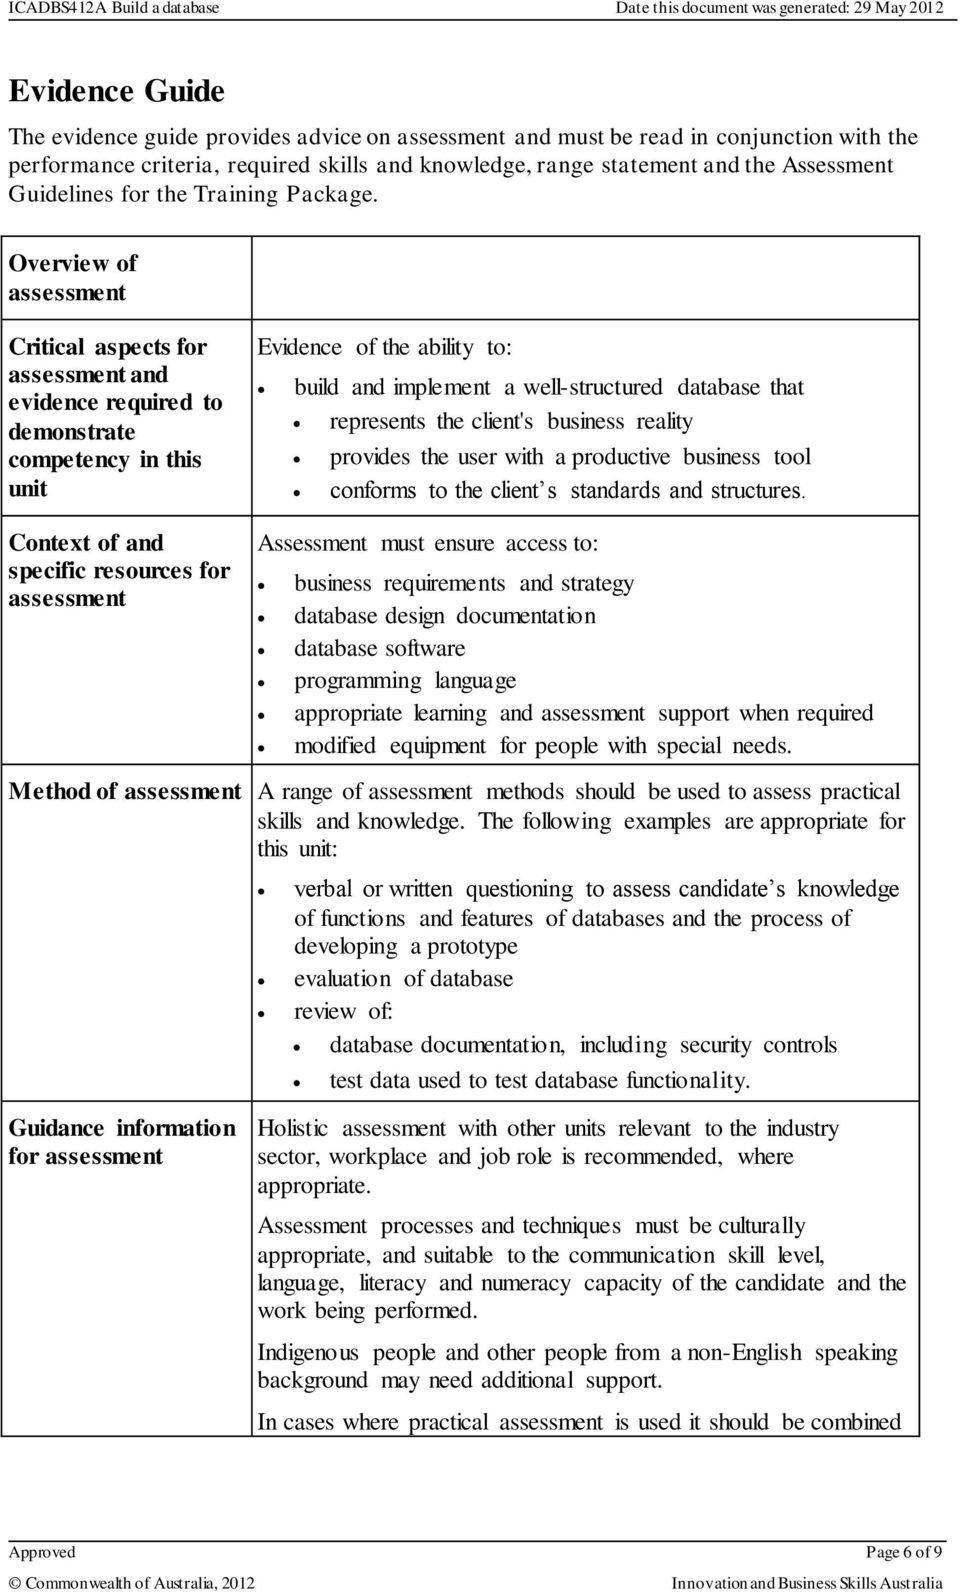 Overview of assessment Critical aspects for assessment and evidence required to demonstrate competency in this unit Evidence of the ability to: build and implement a well-structured database that